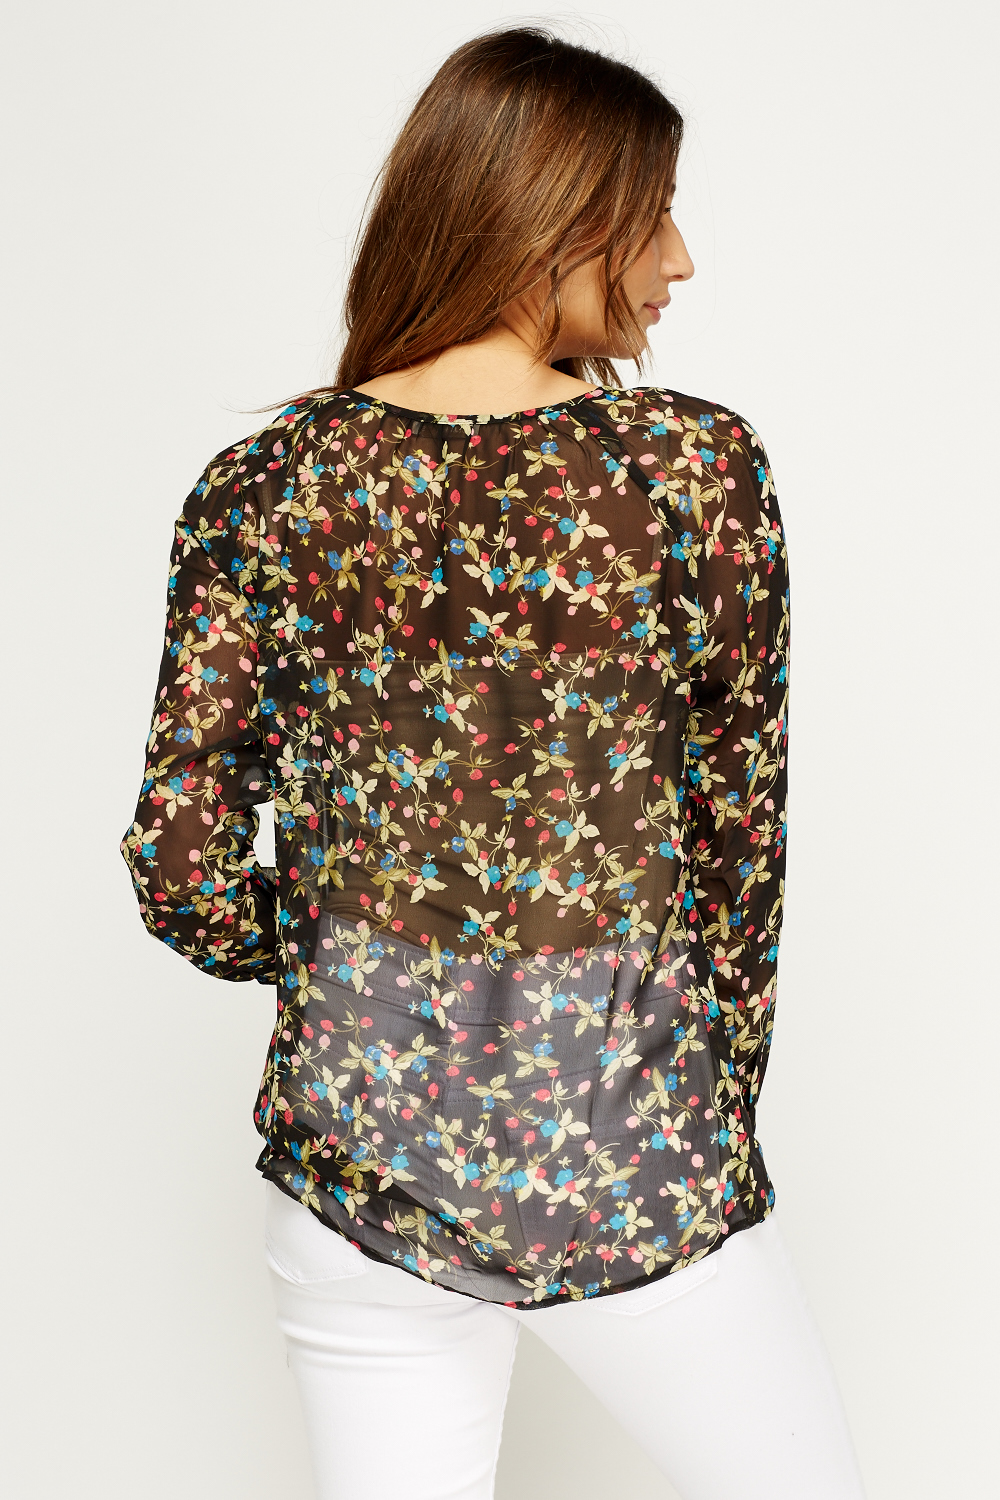 Find great deals on eBay for floral blouse long sleeve. Shop with confidence.